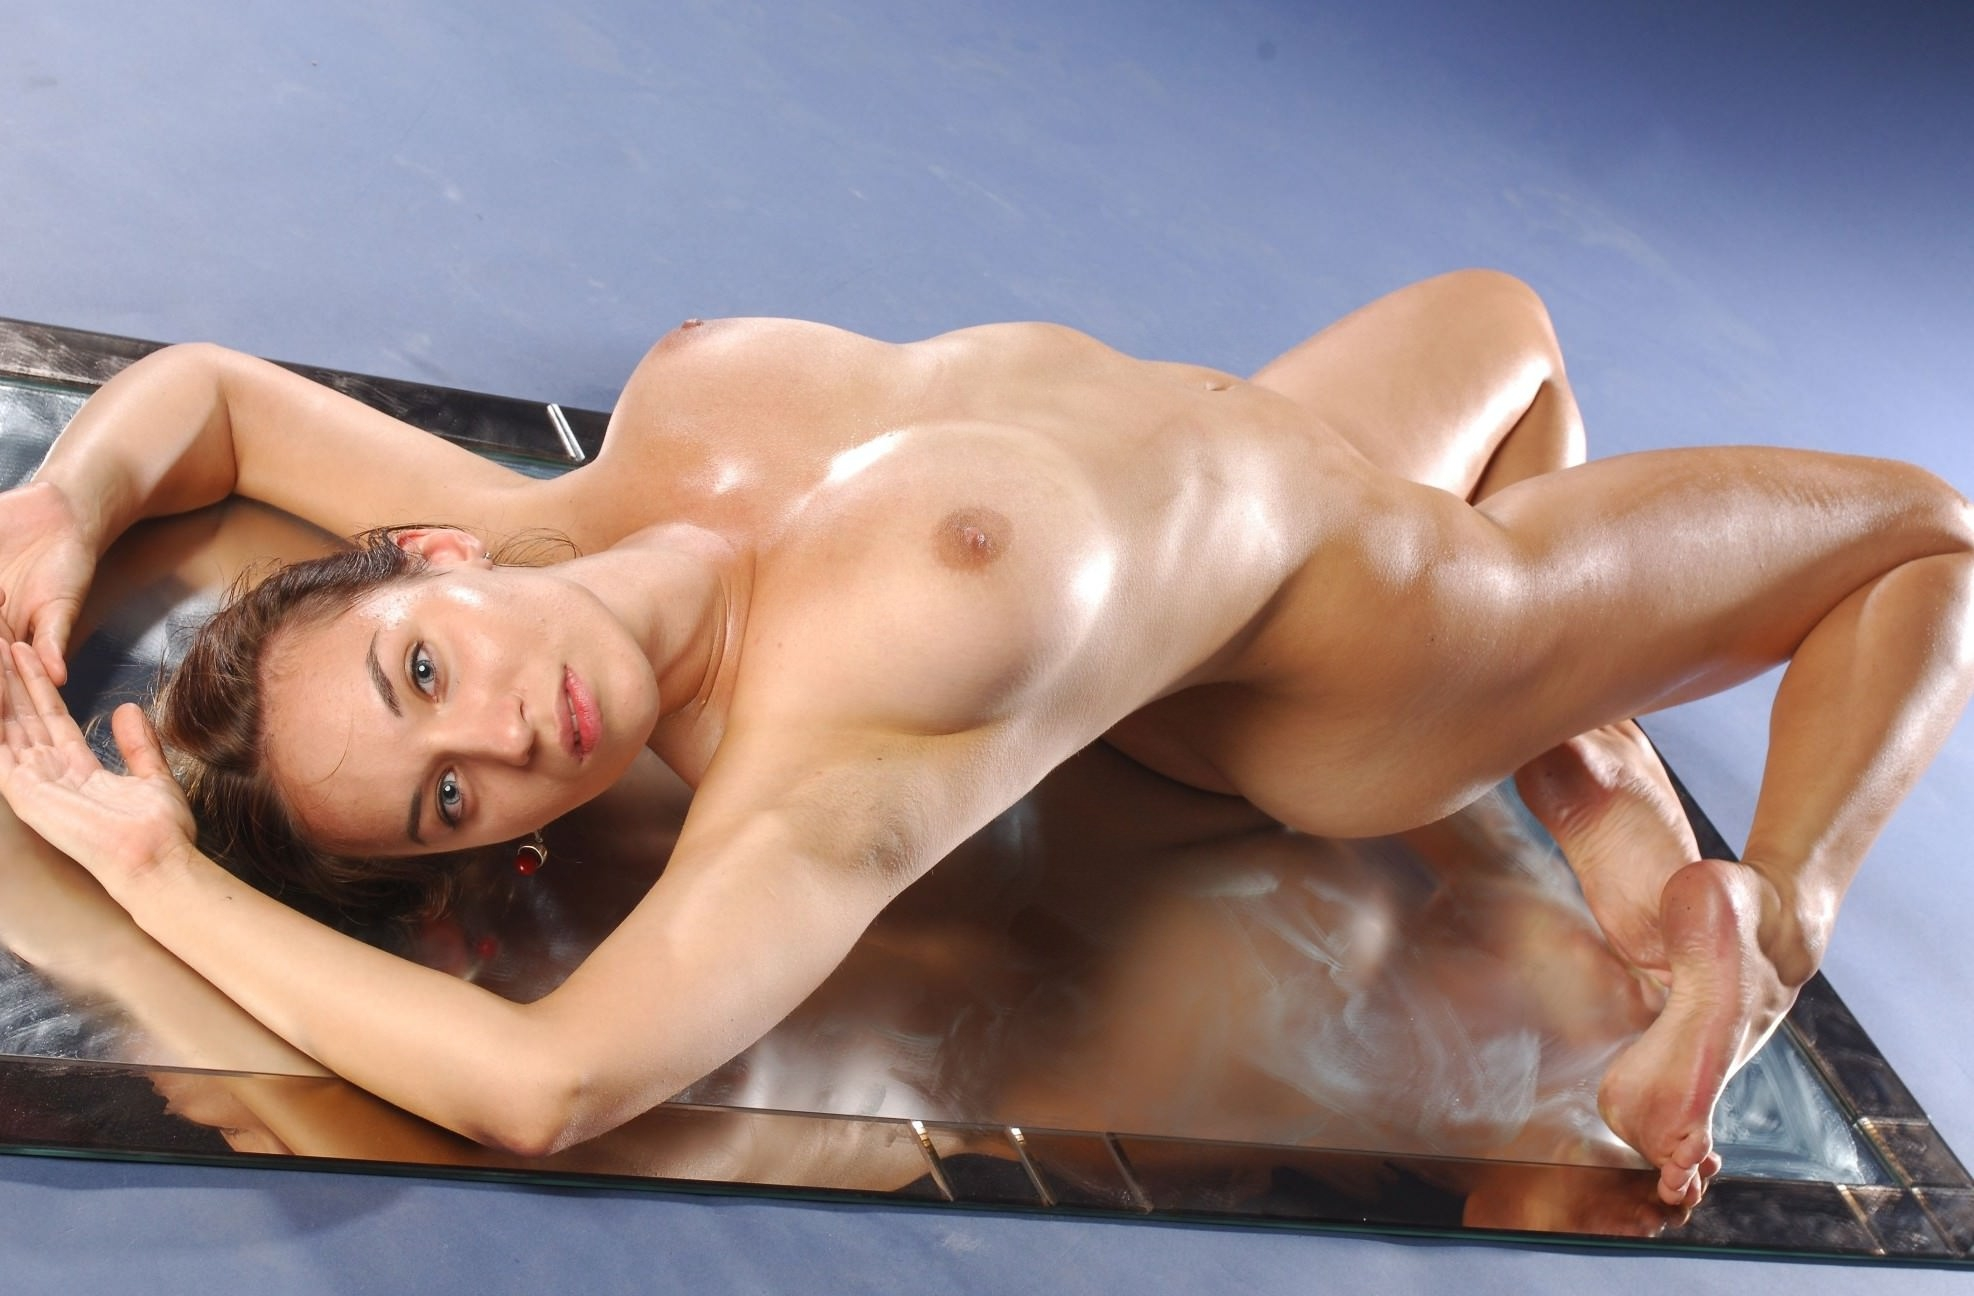 Asia Sexy Girl Nude Body Stock Photo